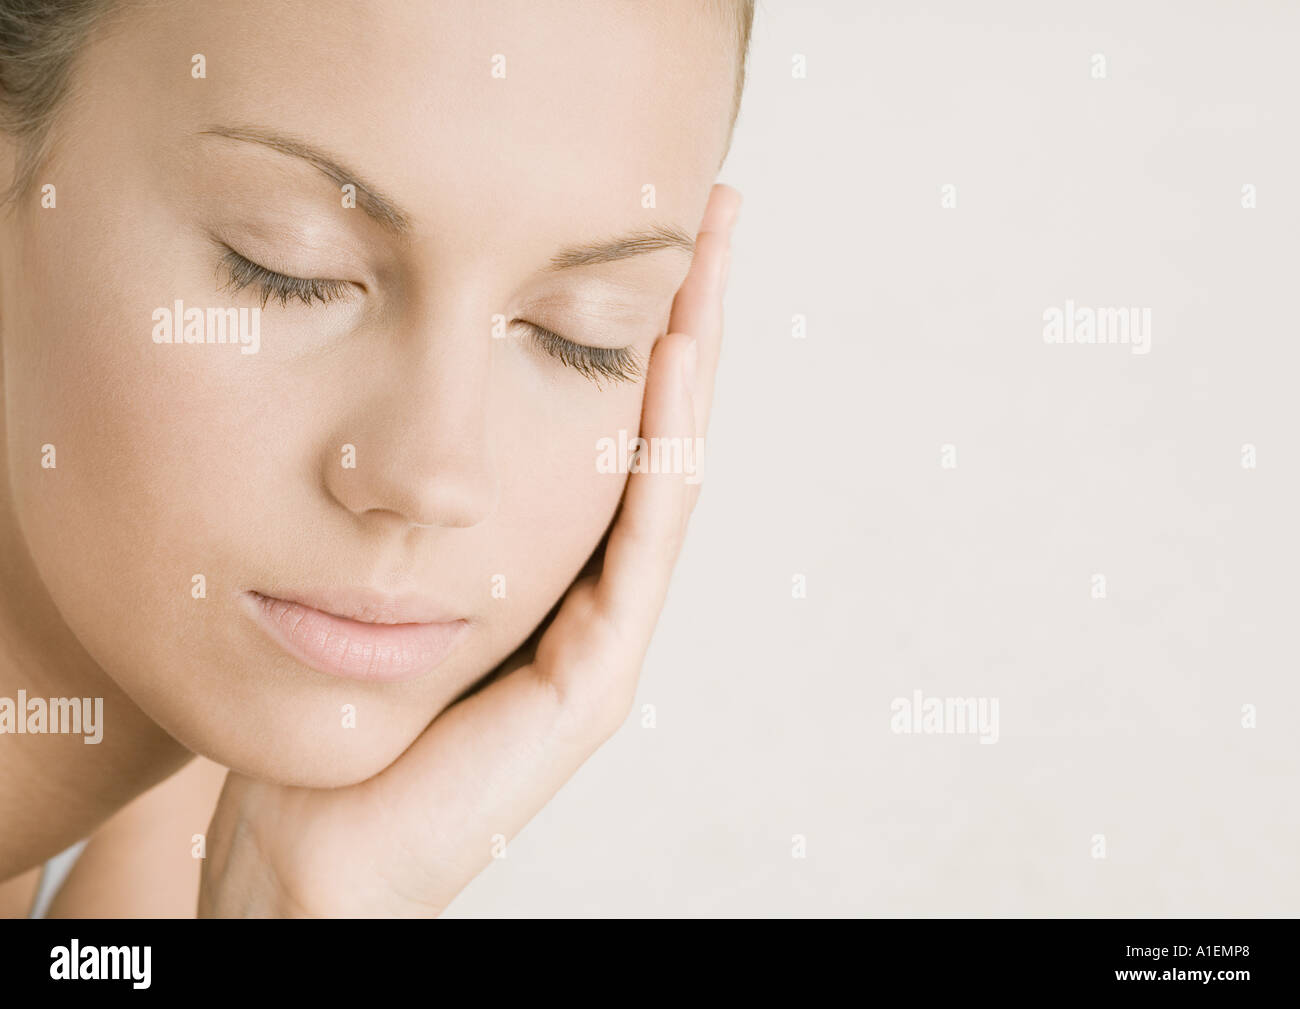 Young woman with eyes closed resting head on hand - Stock Image